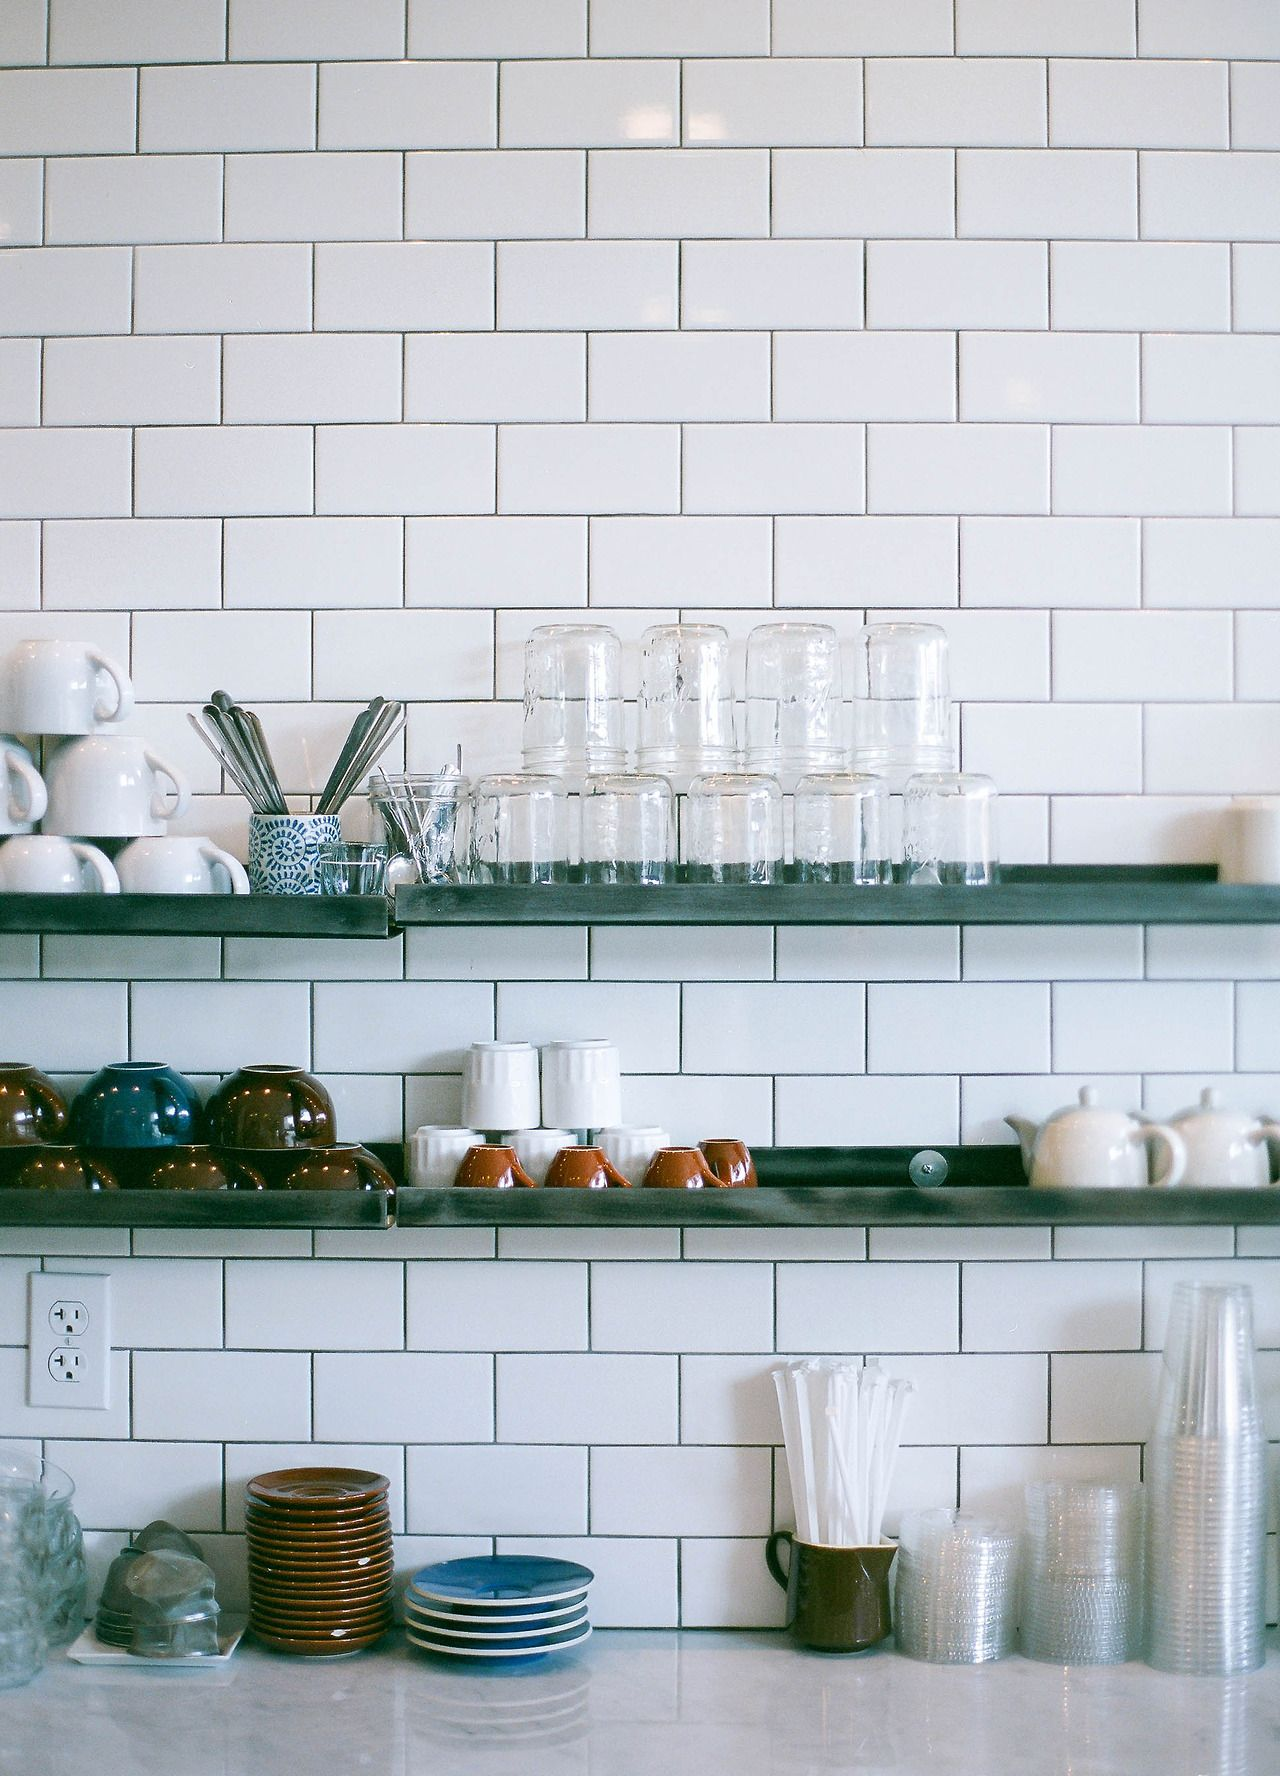 beacon coffe & pantry | 805 columbus ave. (sonya yu photog ...